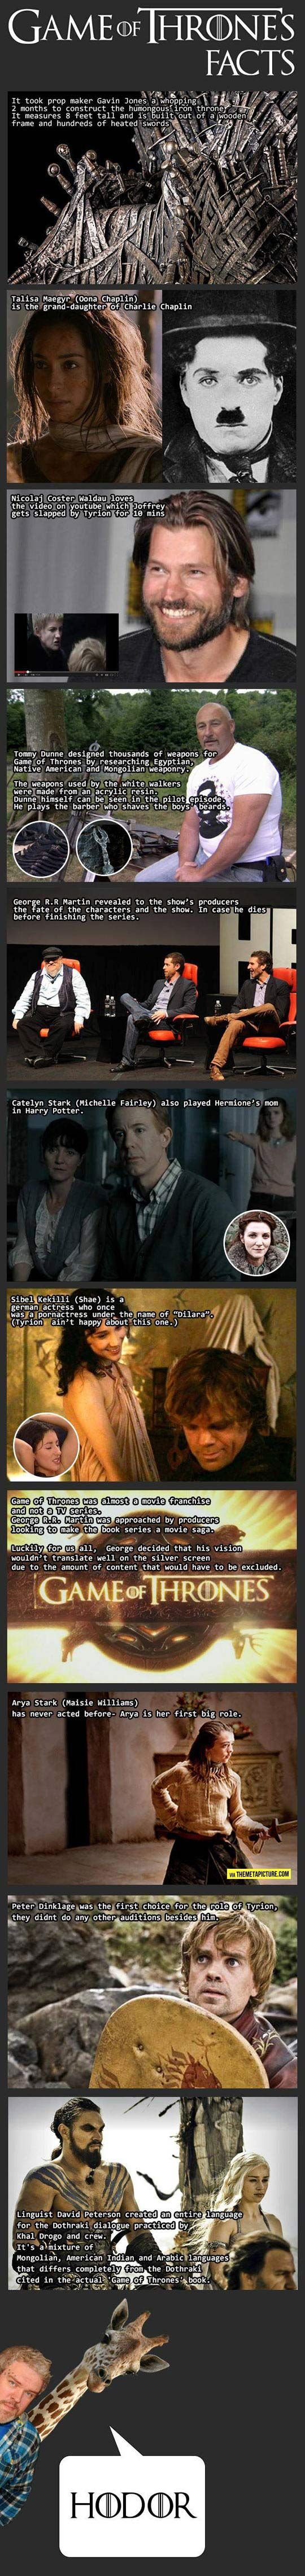 Some interesting Game of Thrones facts... I cannot express my jealousy for the producers mentioned in the fifth frame